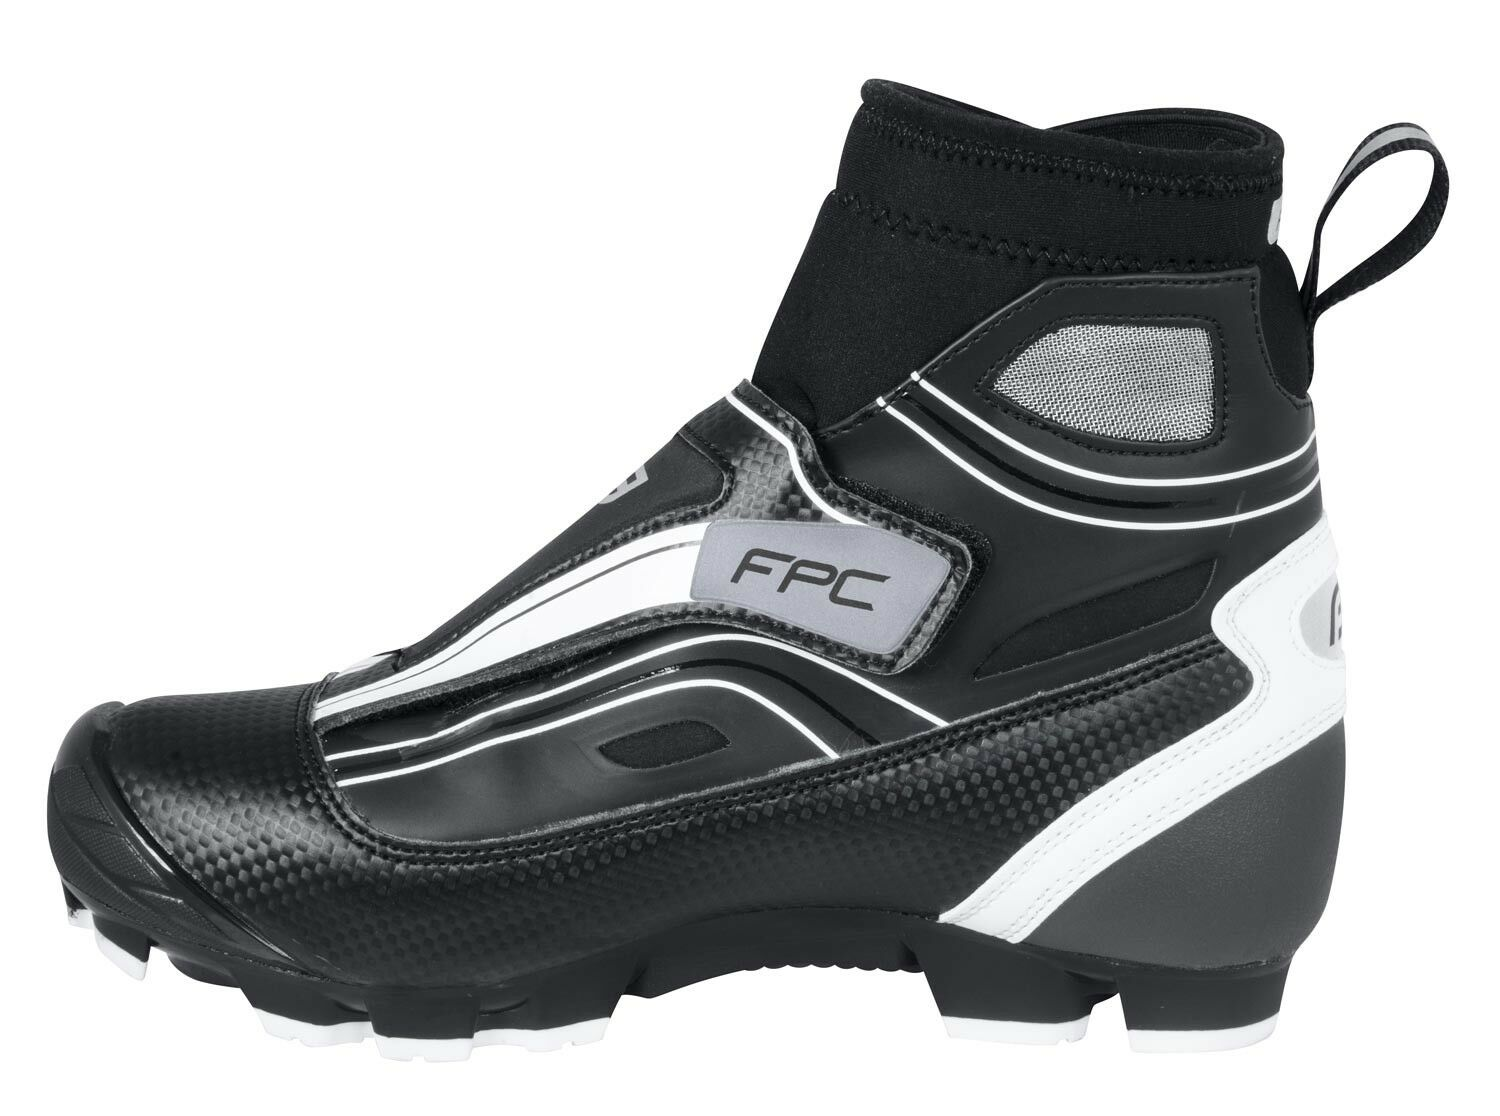 FORCE Stiefel ICE Winter MTB Cycling Stiefel FORCE d33e80